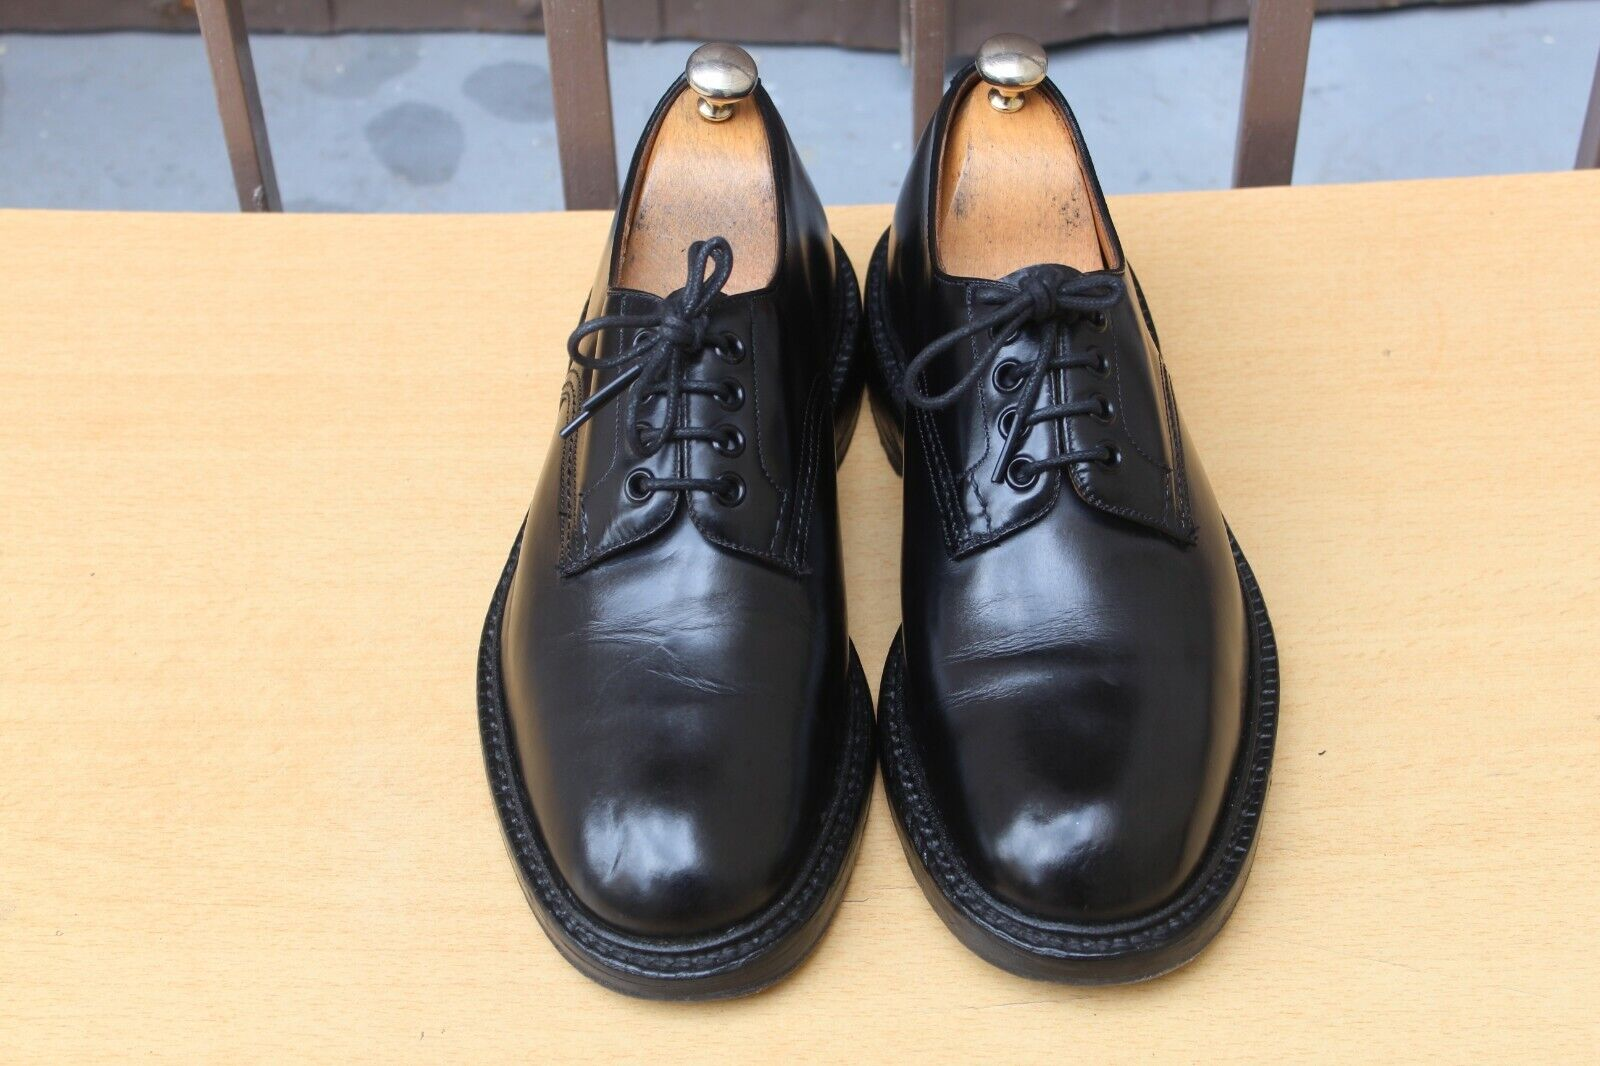 Trickers zapatos double leather soles 7 41 excellent condition hombres zapatos